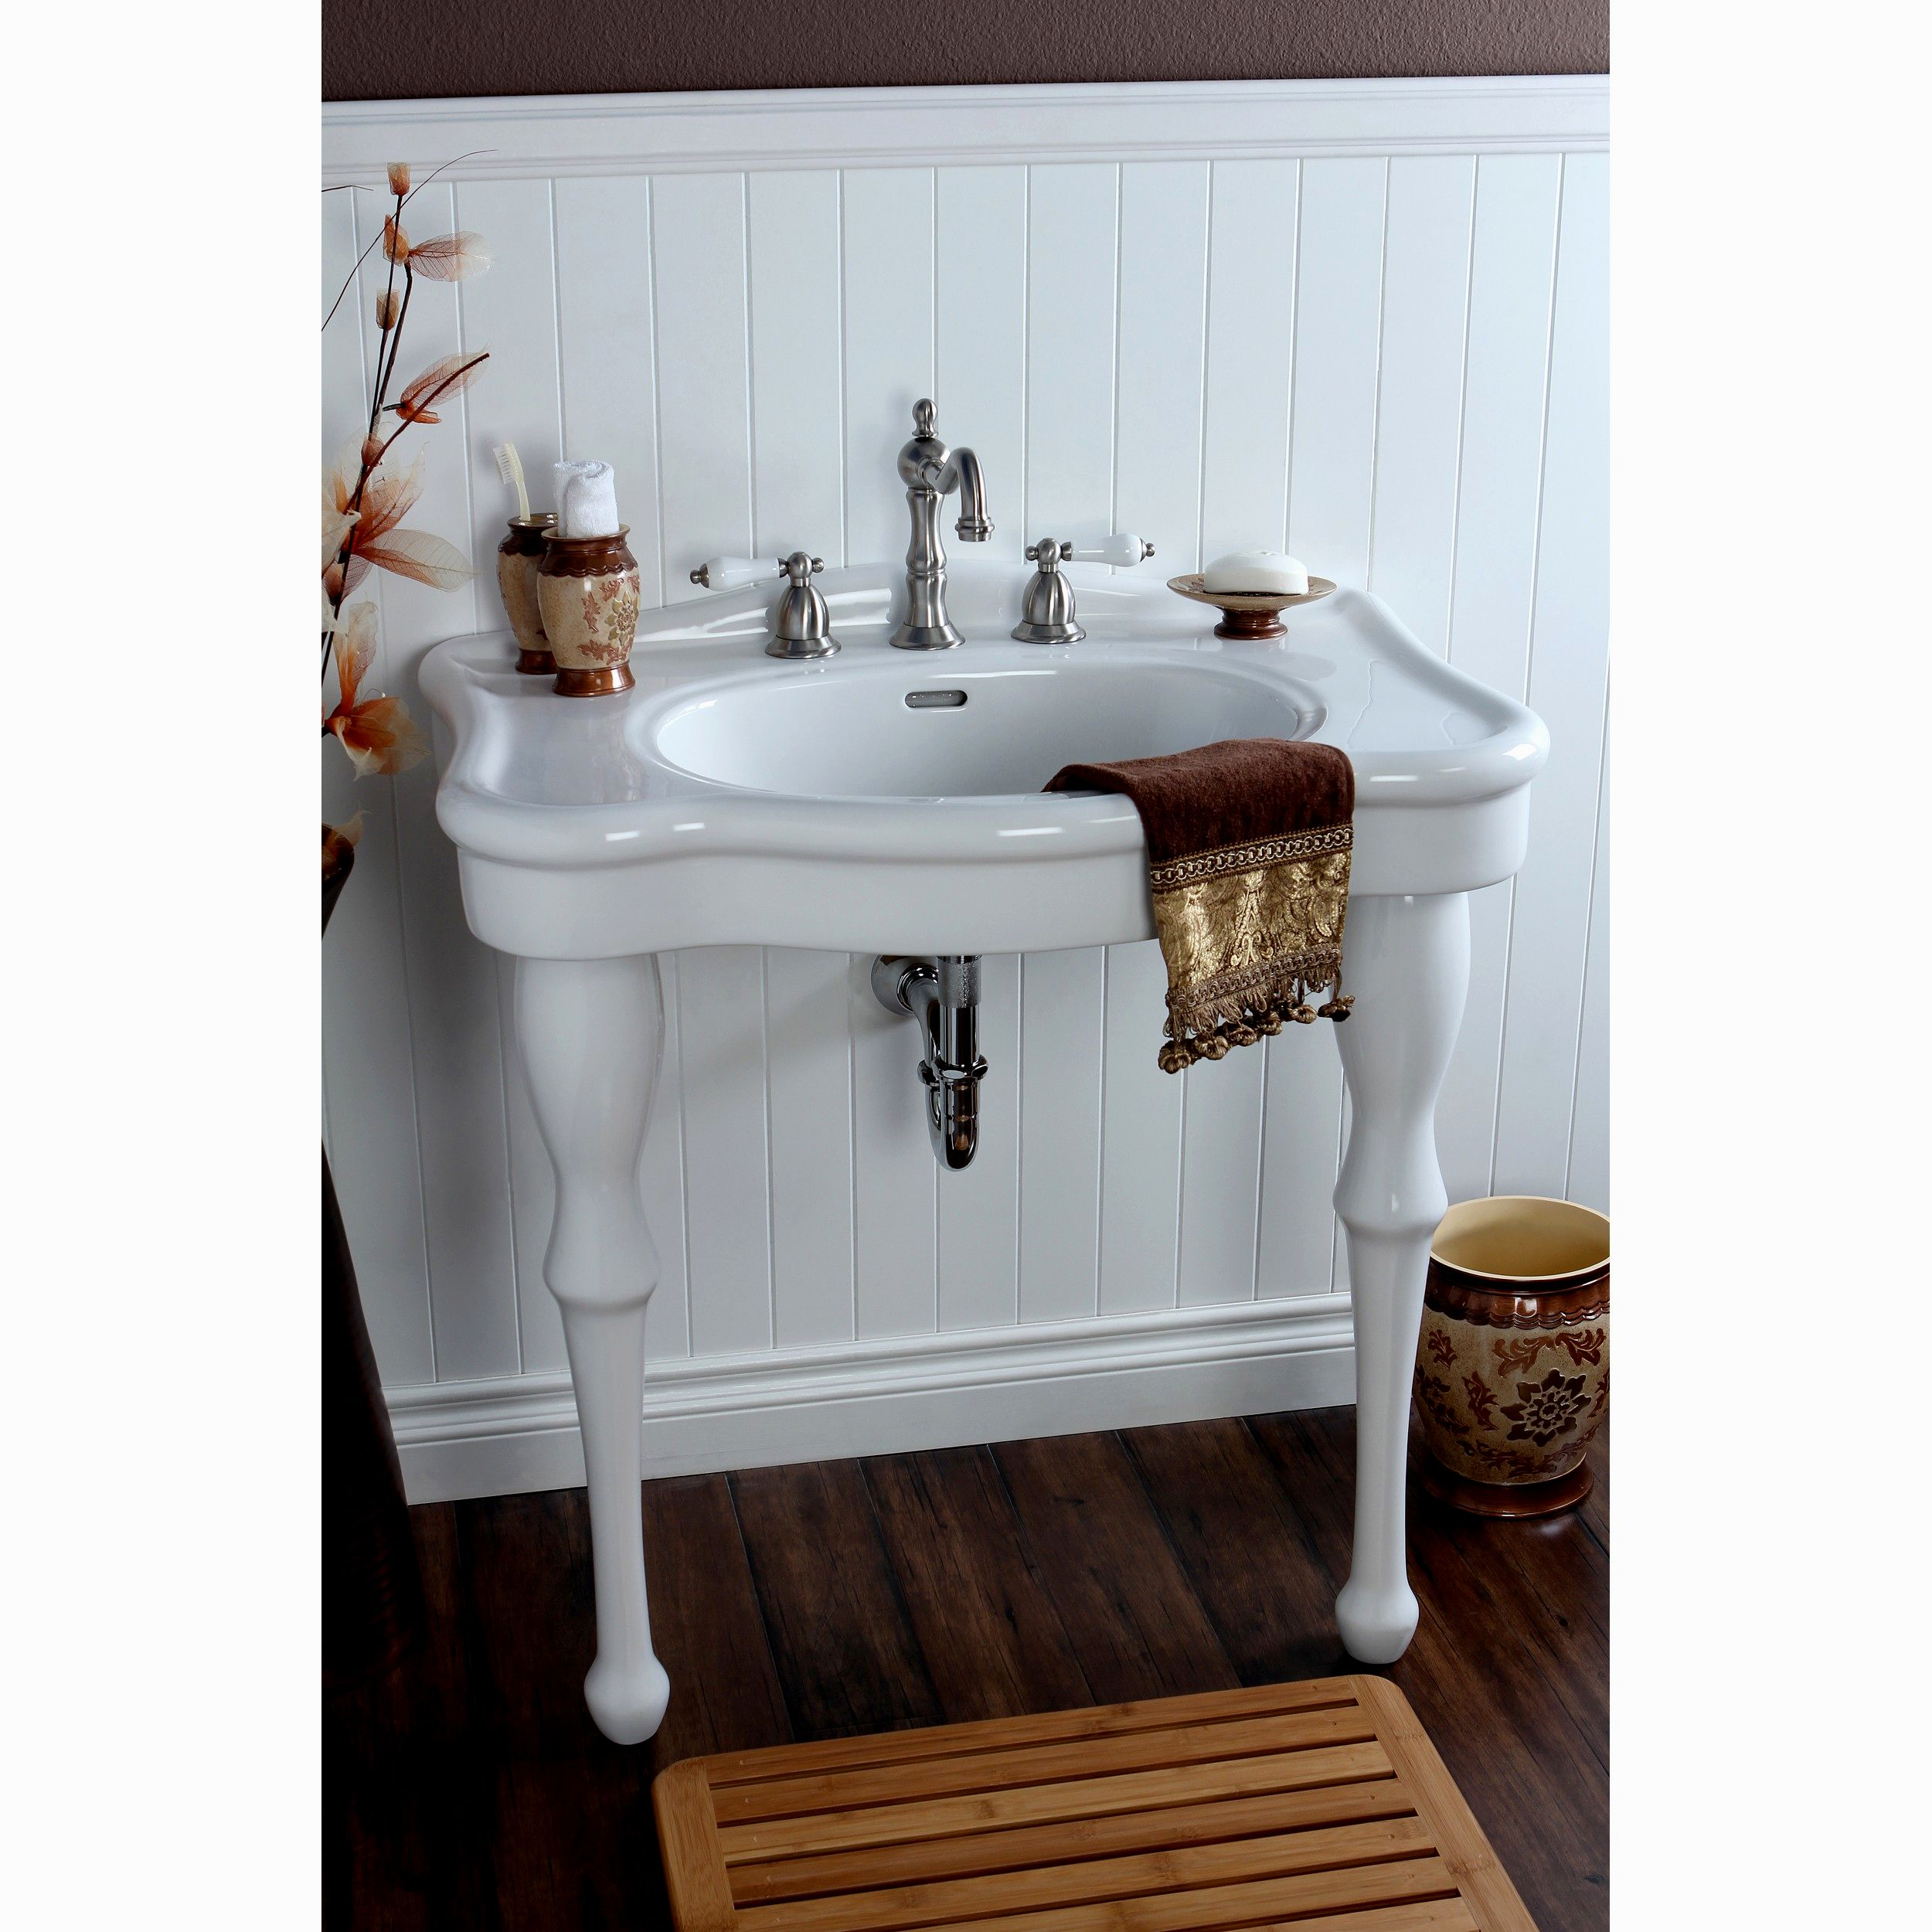 finest ada compliant bathroom vanity inspiration-Awesome Ada Compliant Bathroom Vanity Gallery